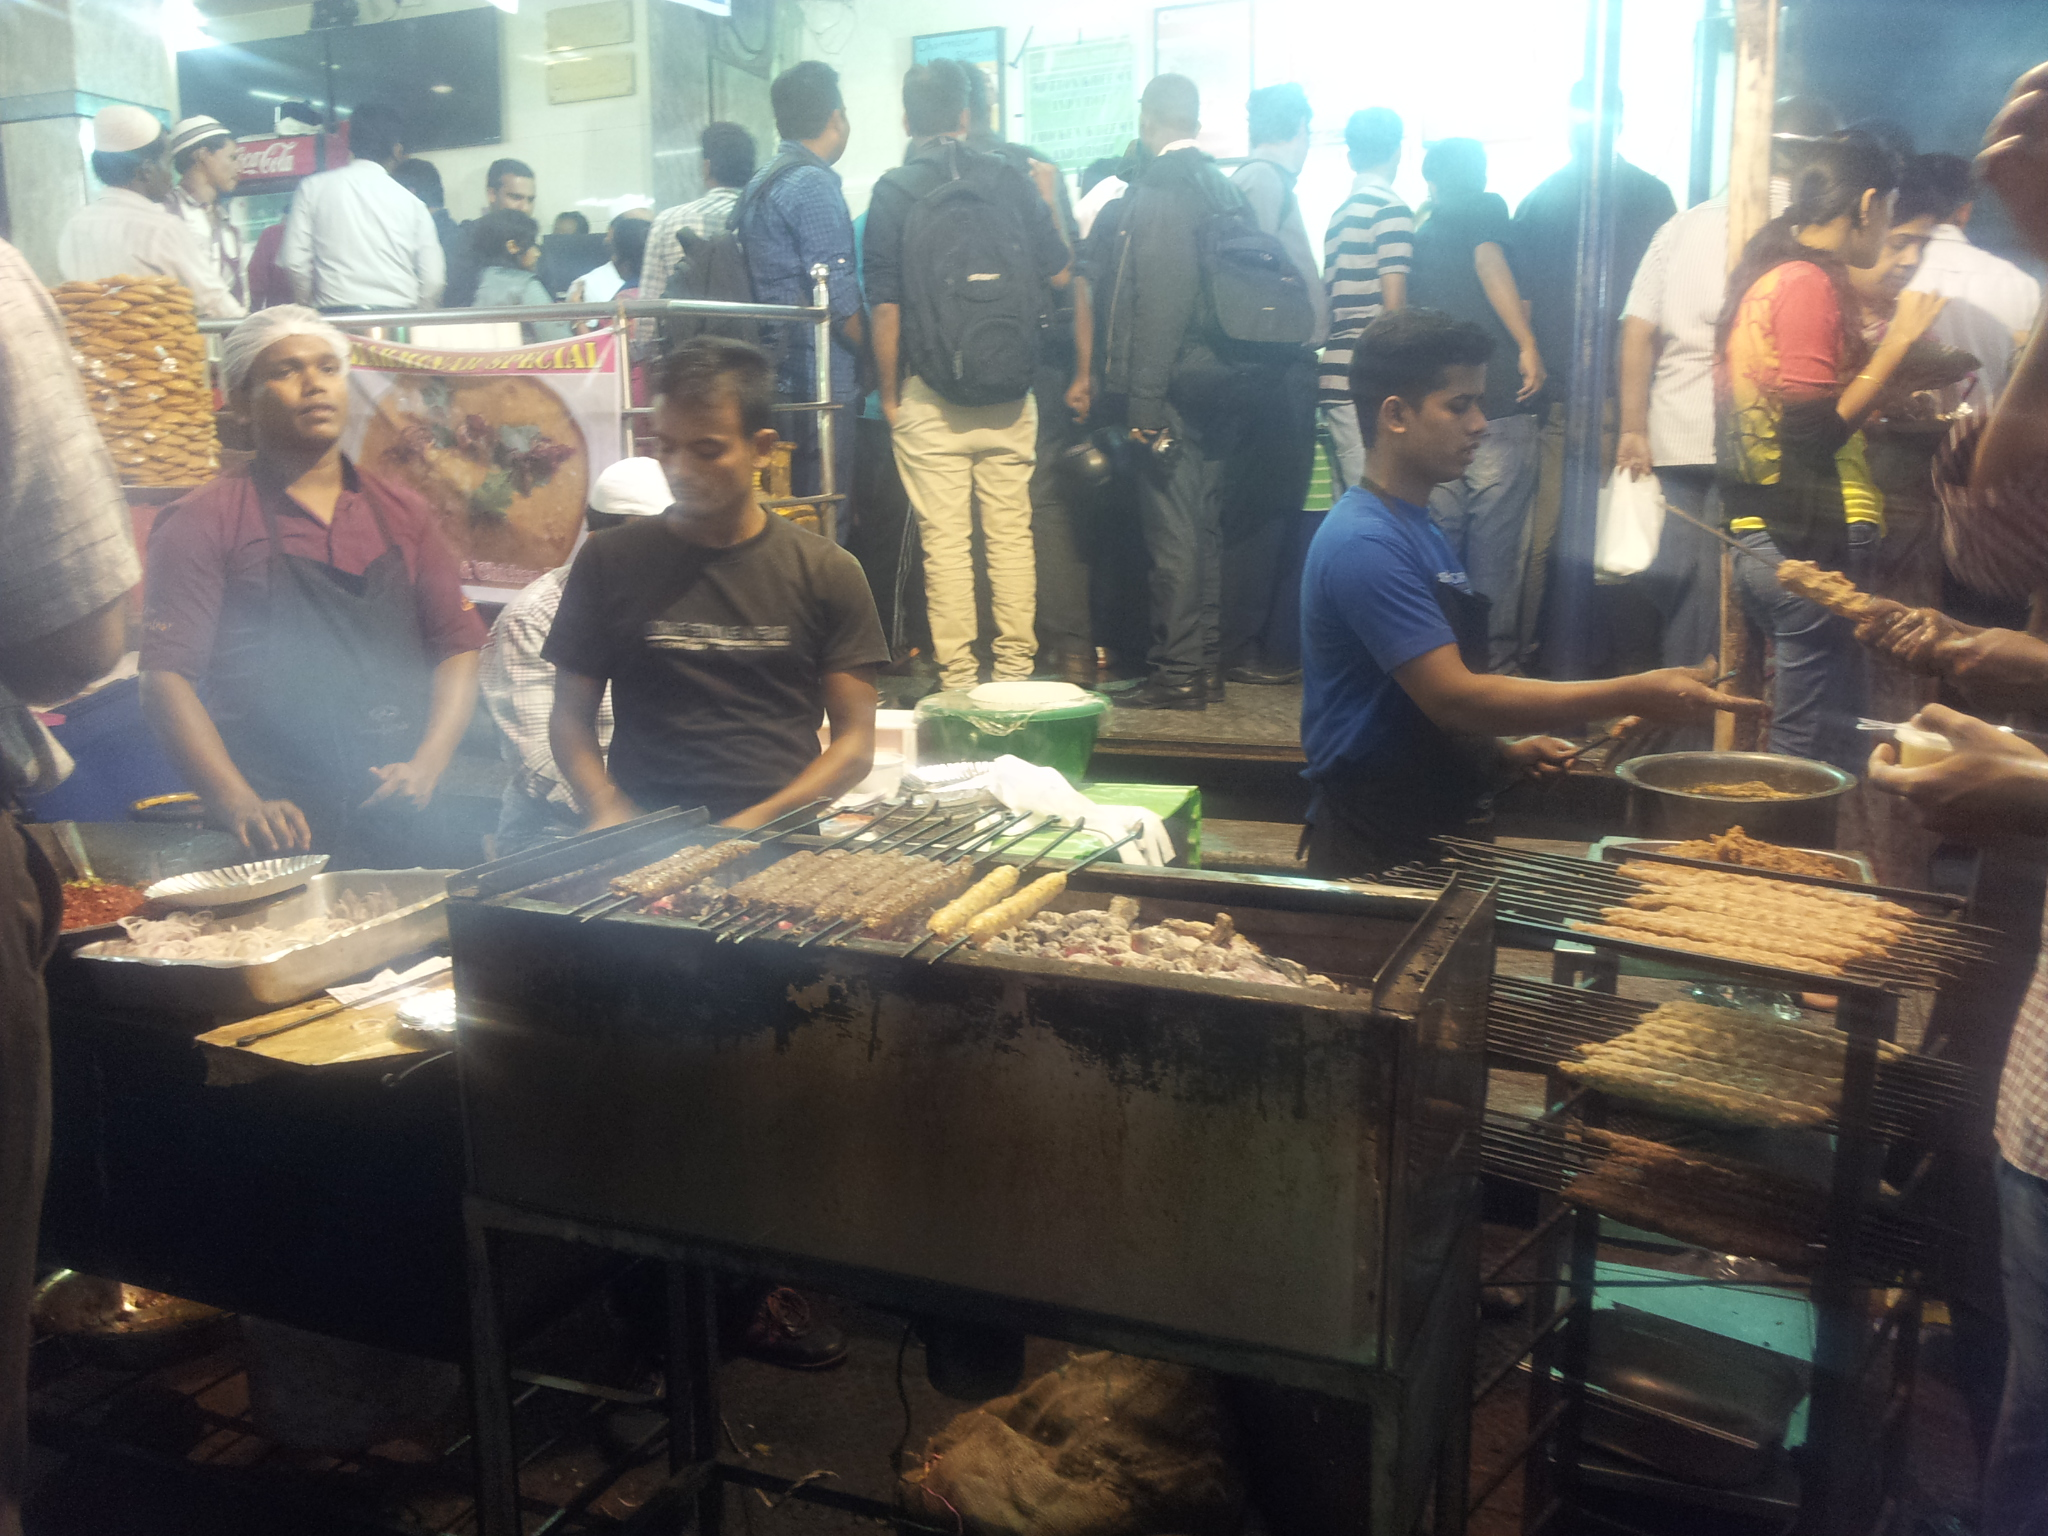 A dedicated section for kebabs in the shop adjacent to mosque. They  had dedicated sections for various types of sweets and deep fried items.